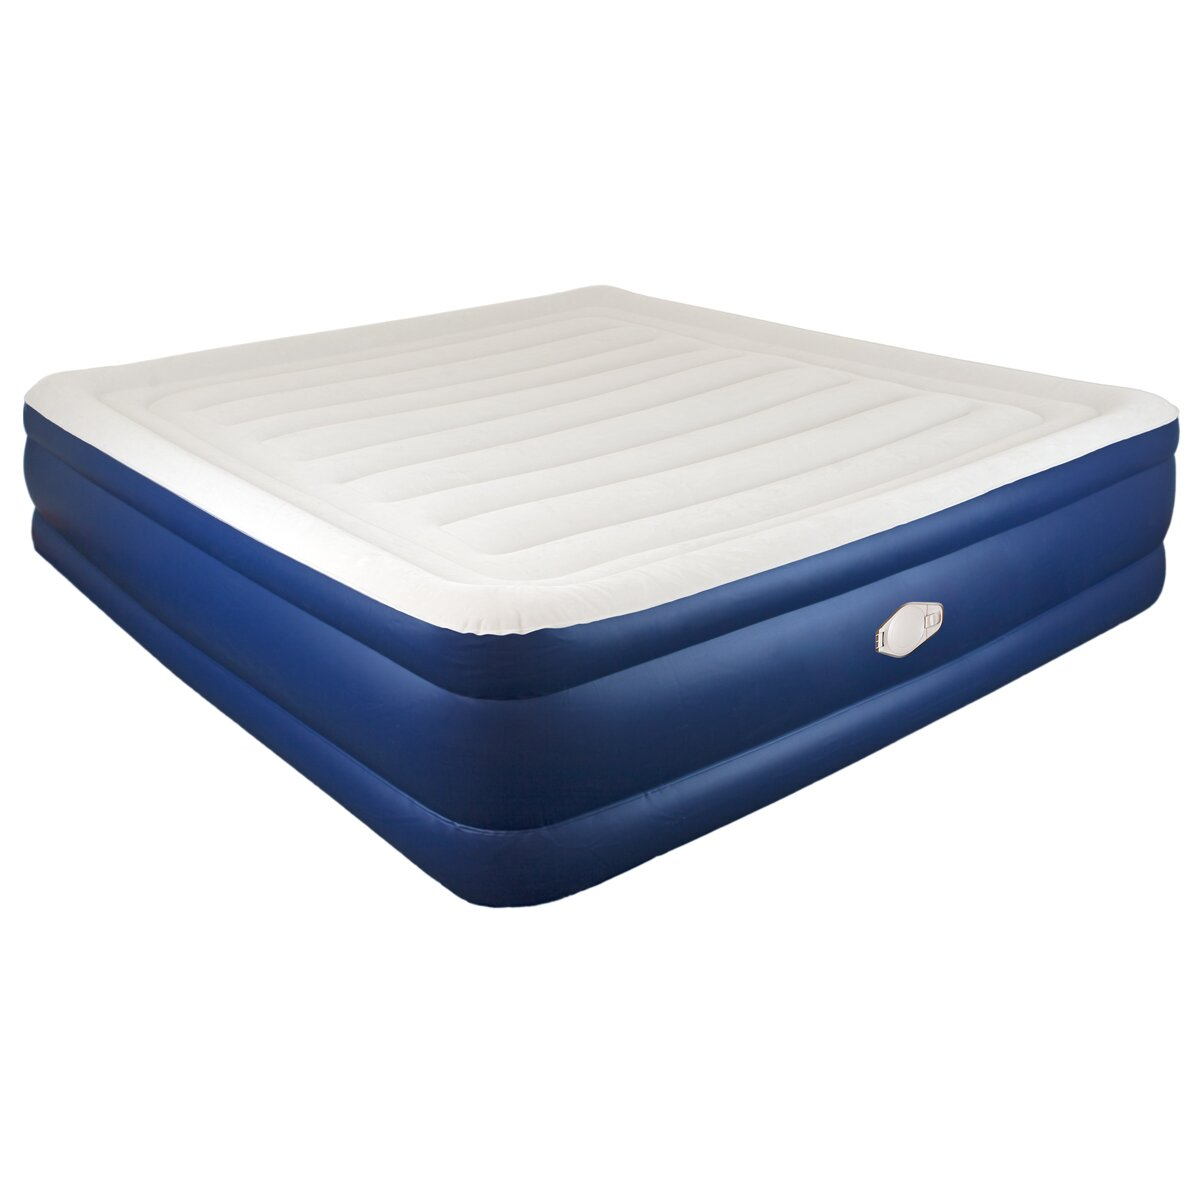 Airtek keystone 20 air mattress reviews wayfair Mattress king